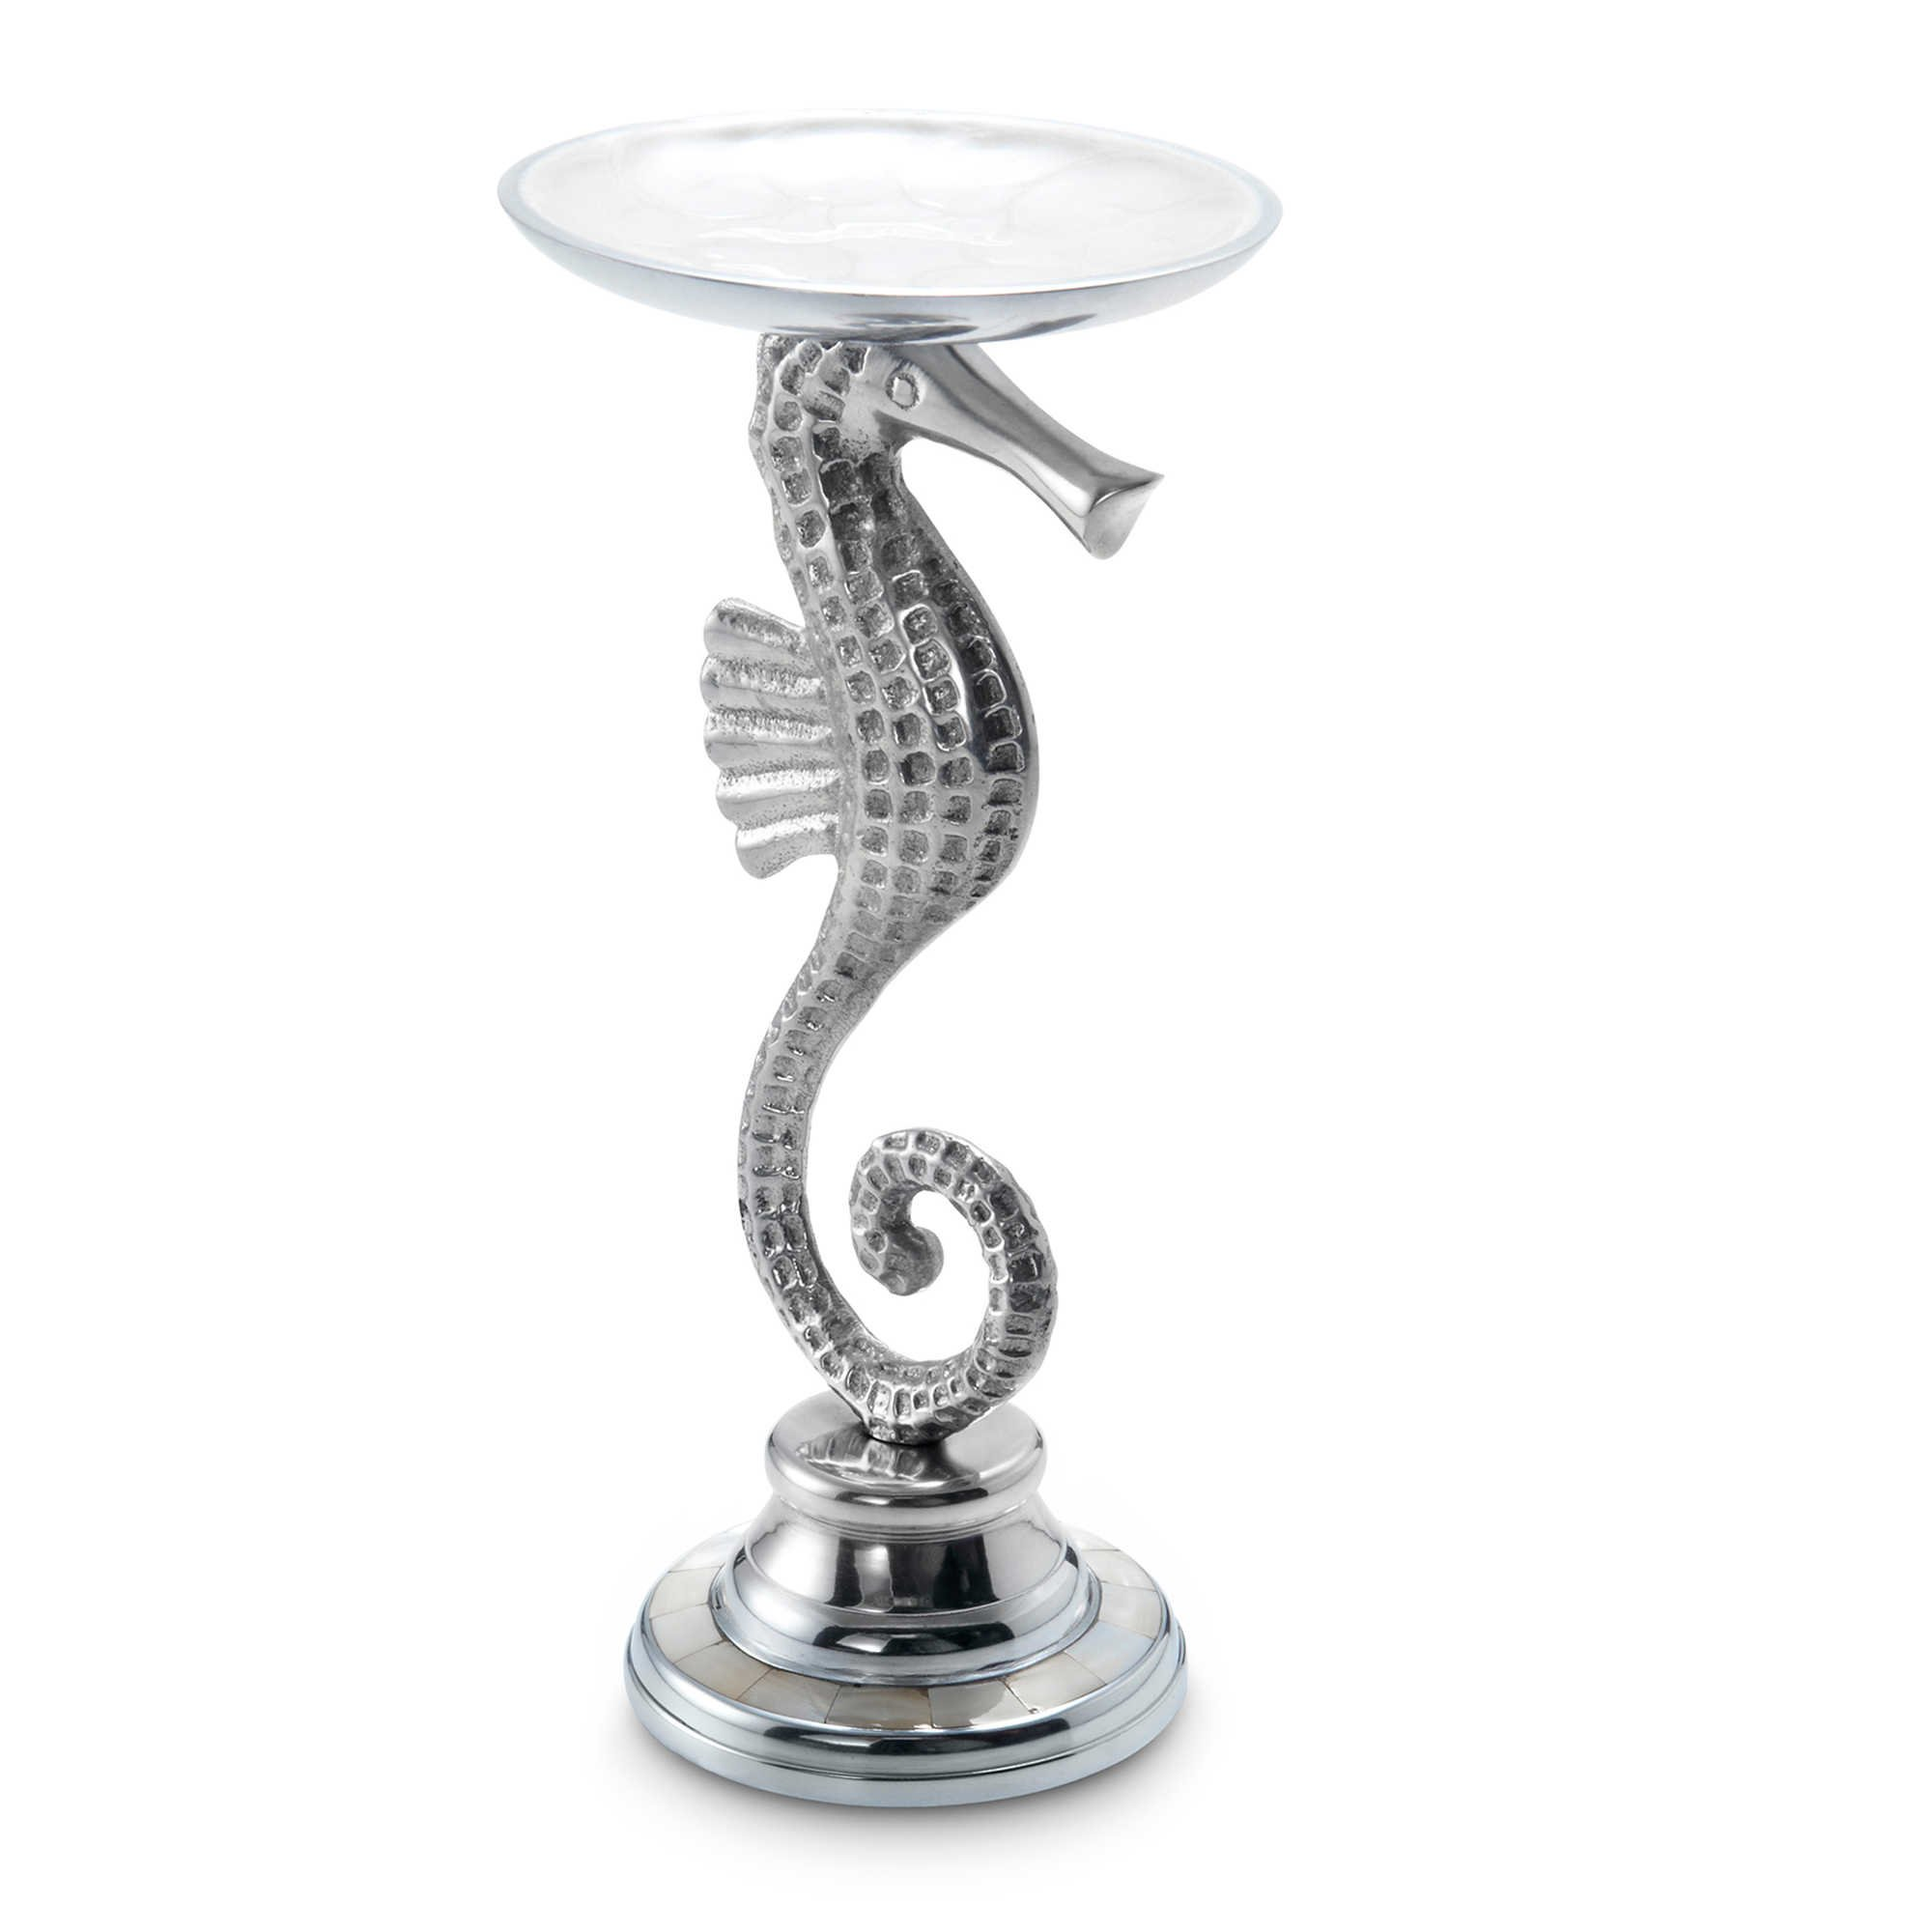 Julia Knight Sea Horse Pillar Candle Holder, 9.5-Inch, Snow, White by Julia Knight (Image #1)